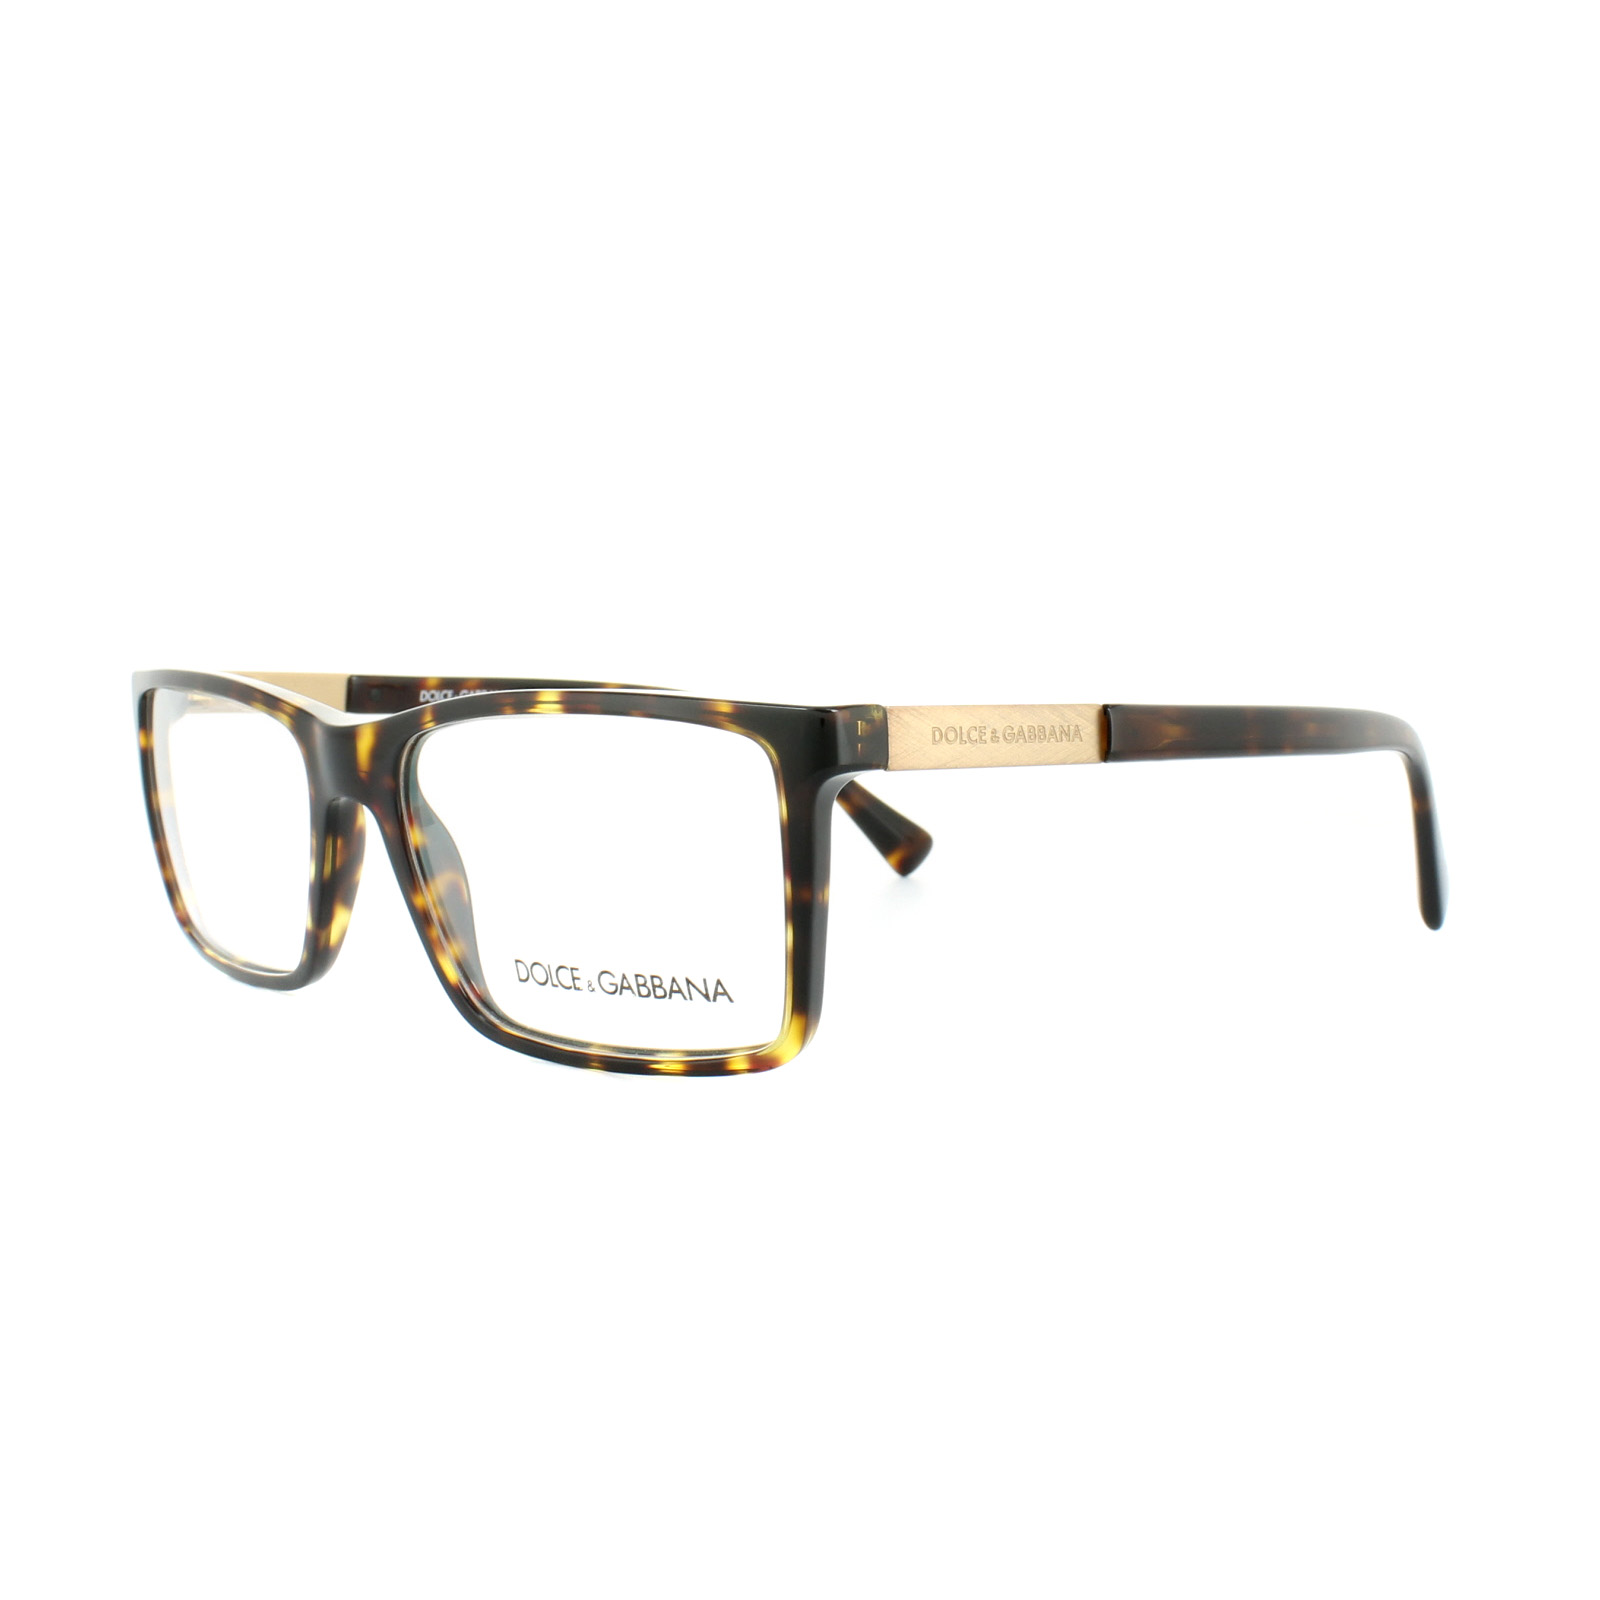 Cheap Dolce and Gabbana DG 3217 Glasses Frames - Discounted Sunglasses